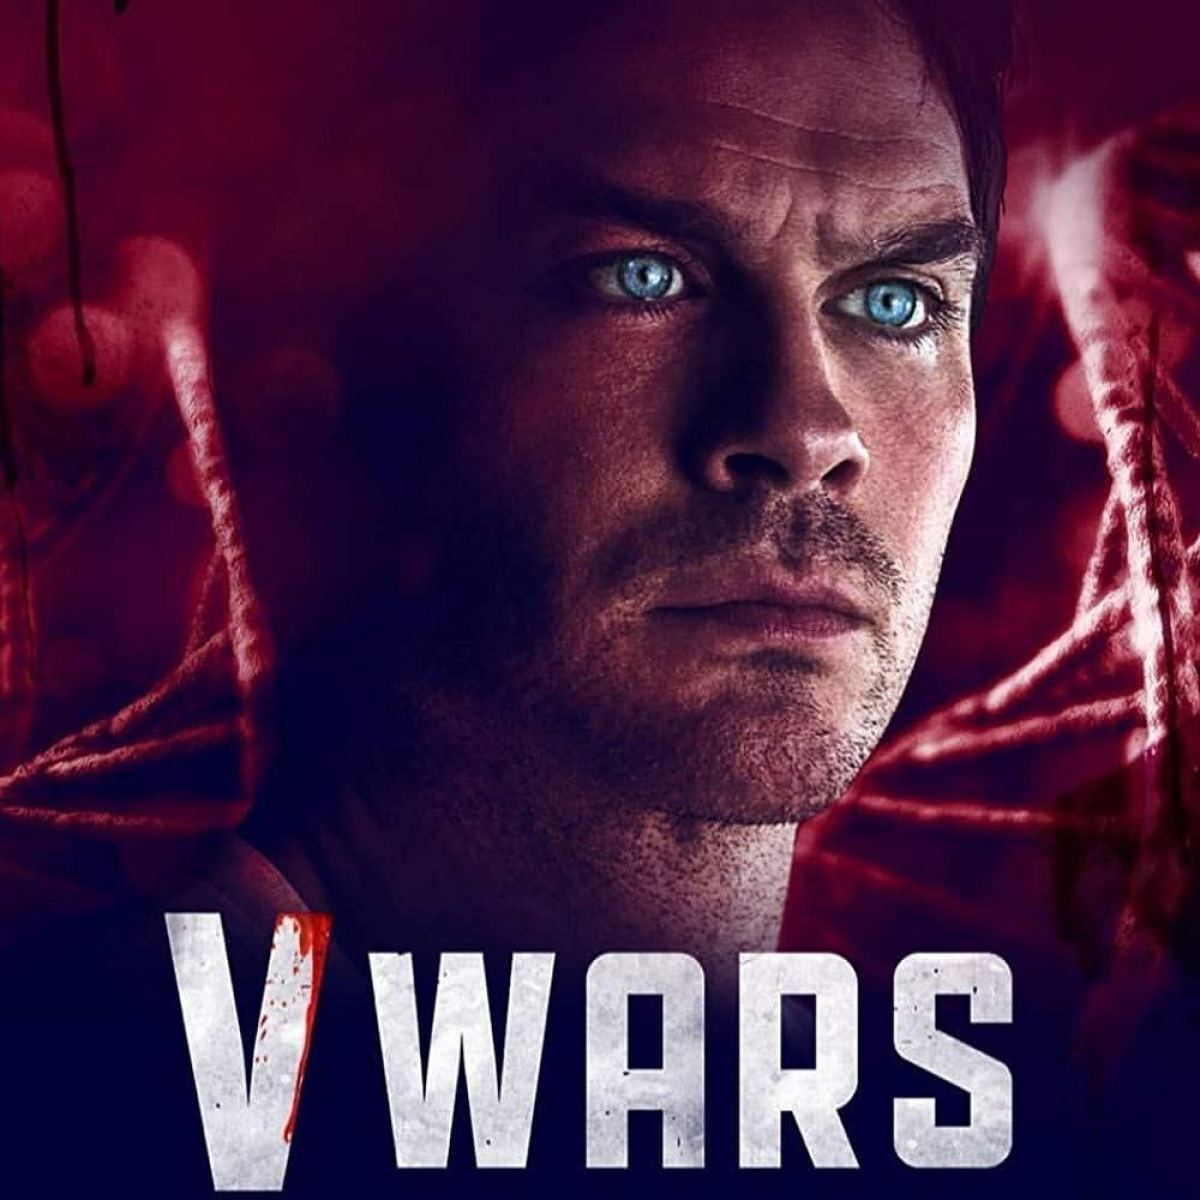 The vampire series 'V Wars' didn't live up to the high standards of Netflix's complex algorithm. Here's why we want a season 2 and to see the cast again.